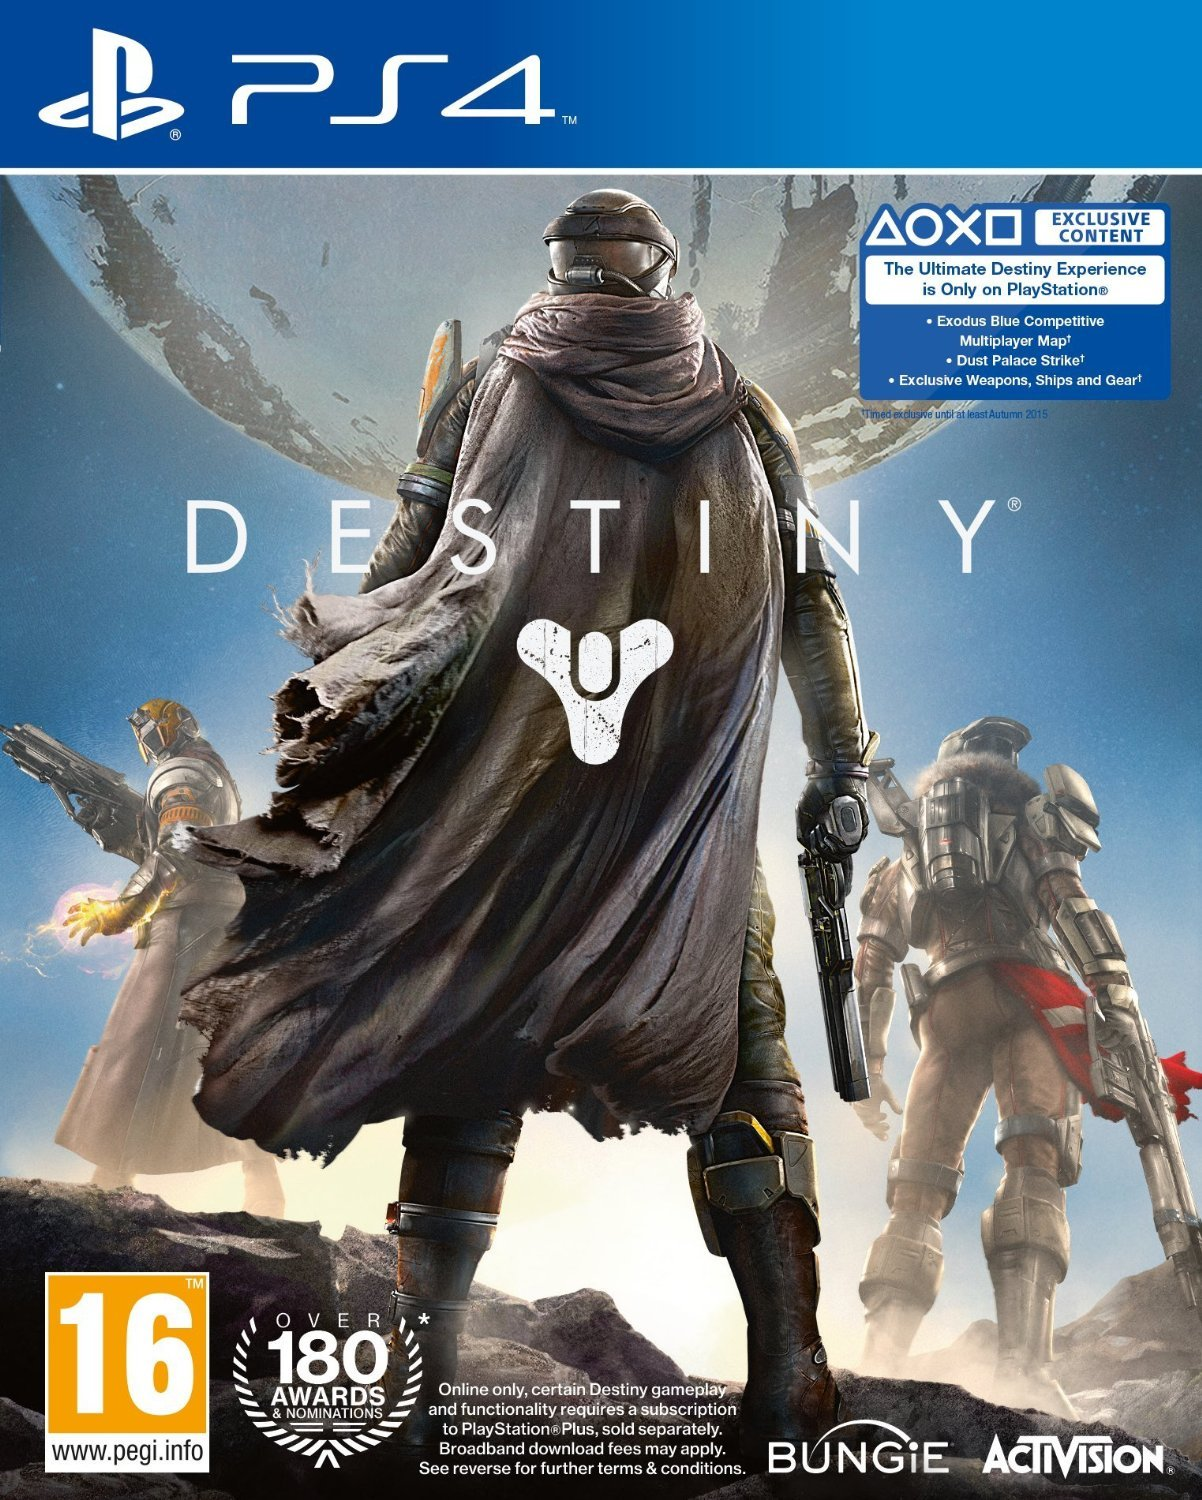 Destiny for PS4 image